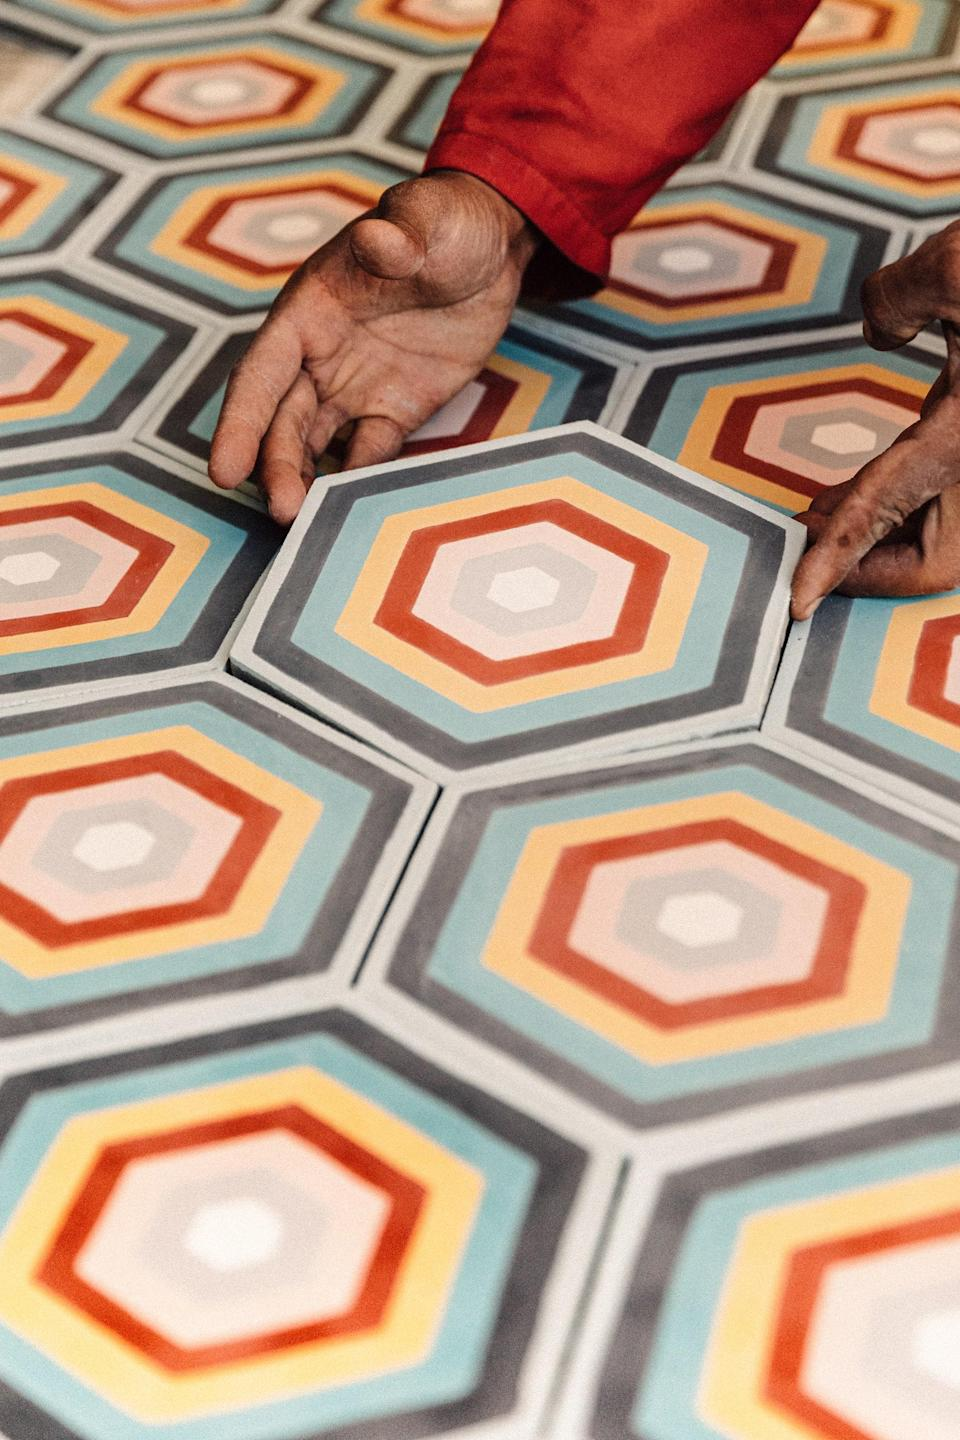 The atelier for Popham Design, with tiles inspired by Berber color patterns